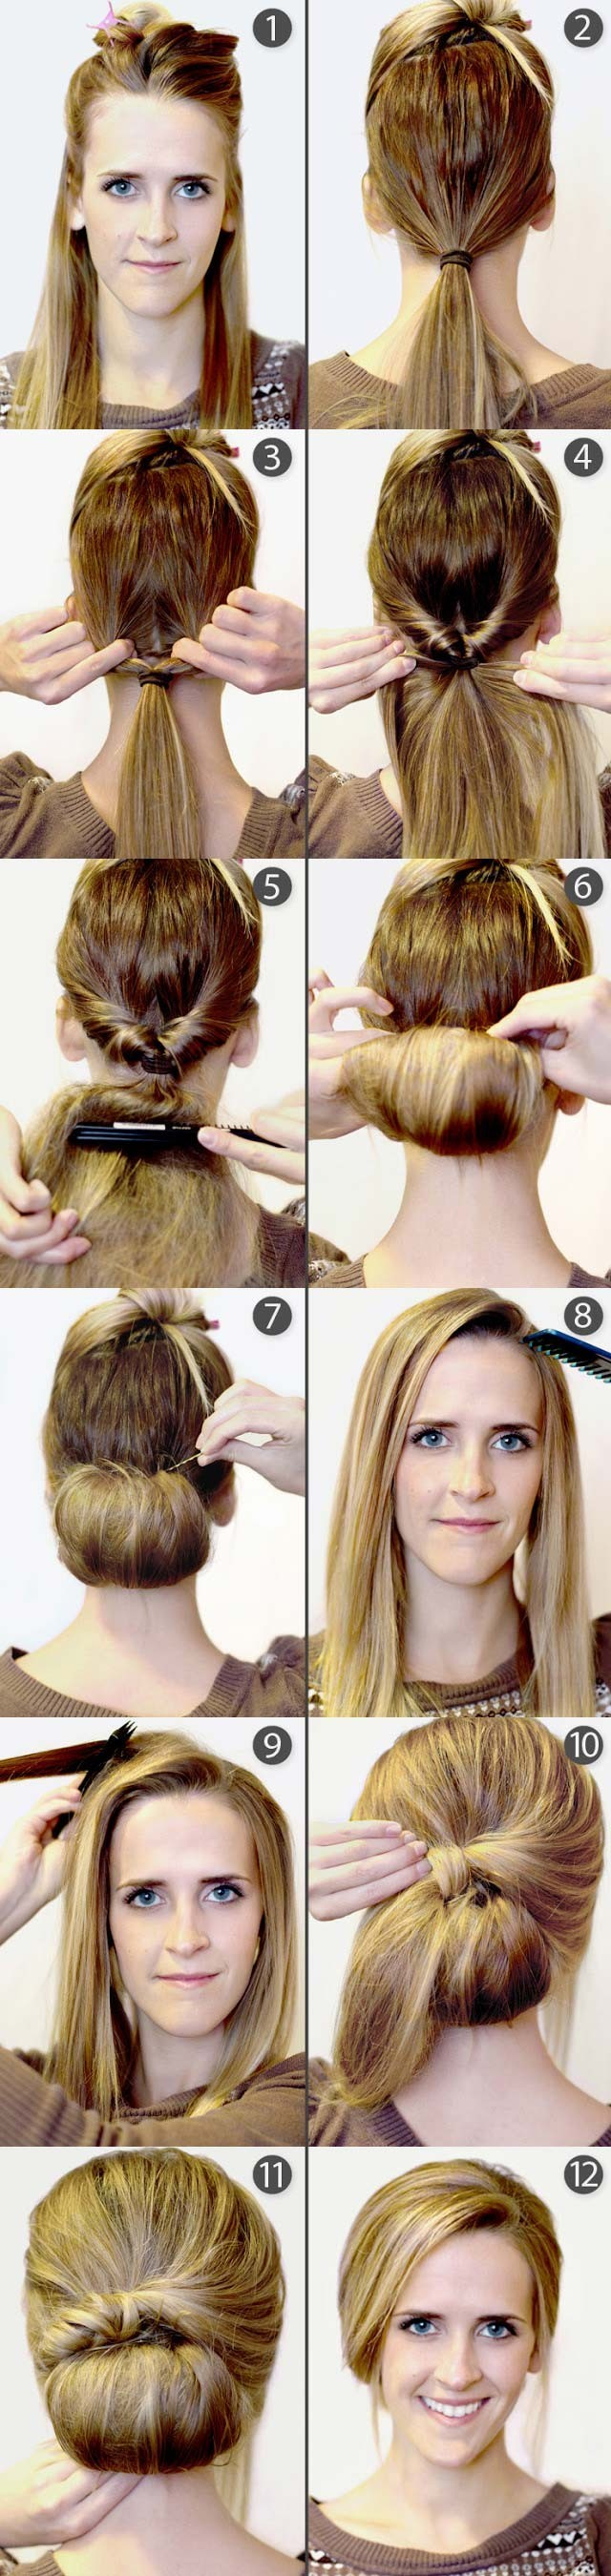 15 cute hairstyles: step-by-step hairstyles for long hair - popular